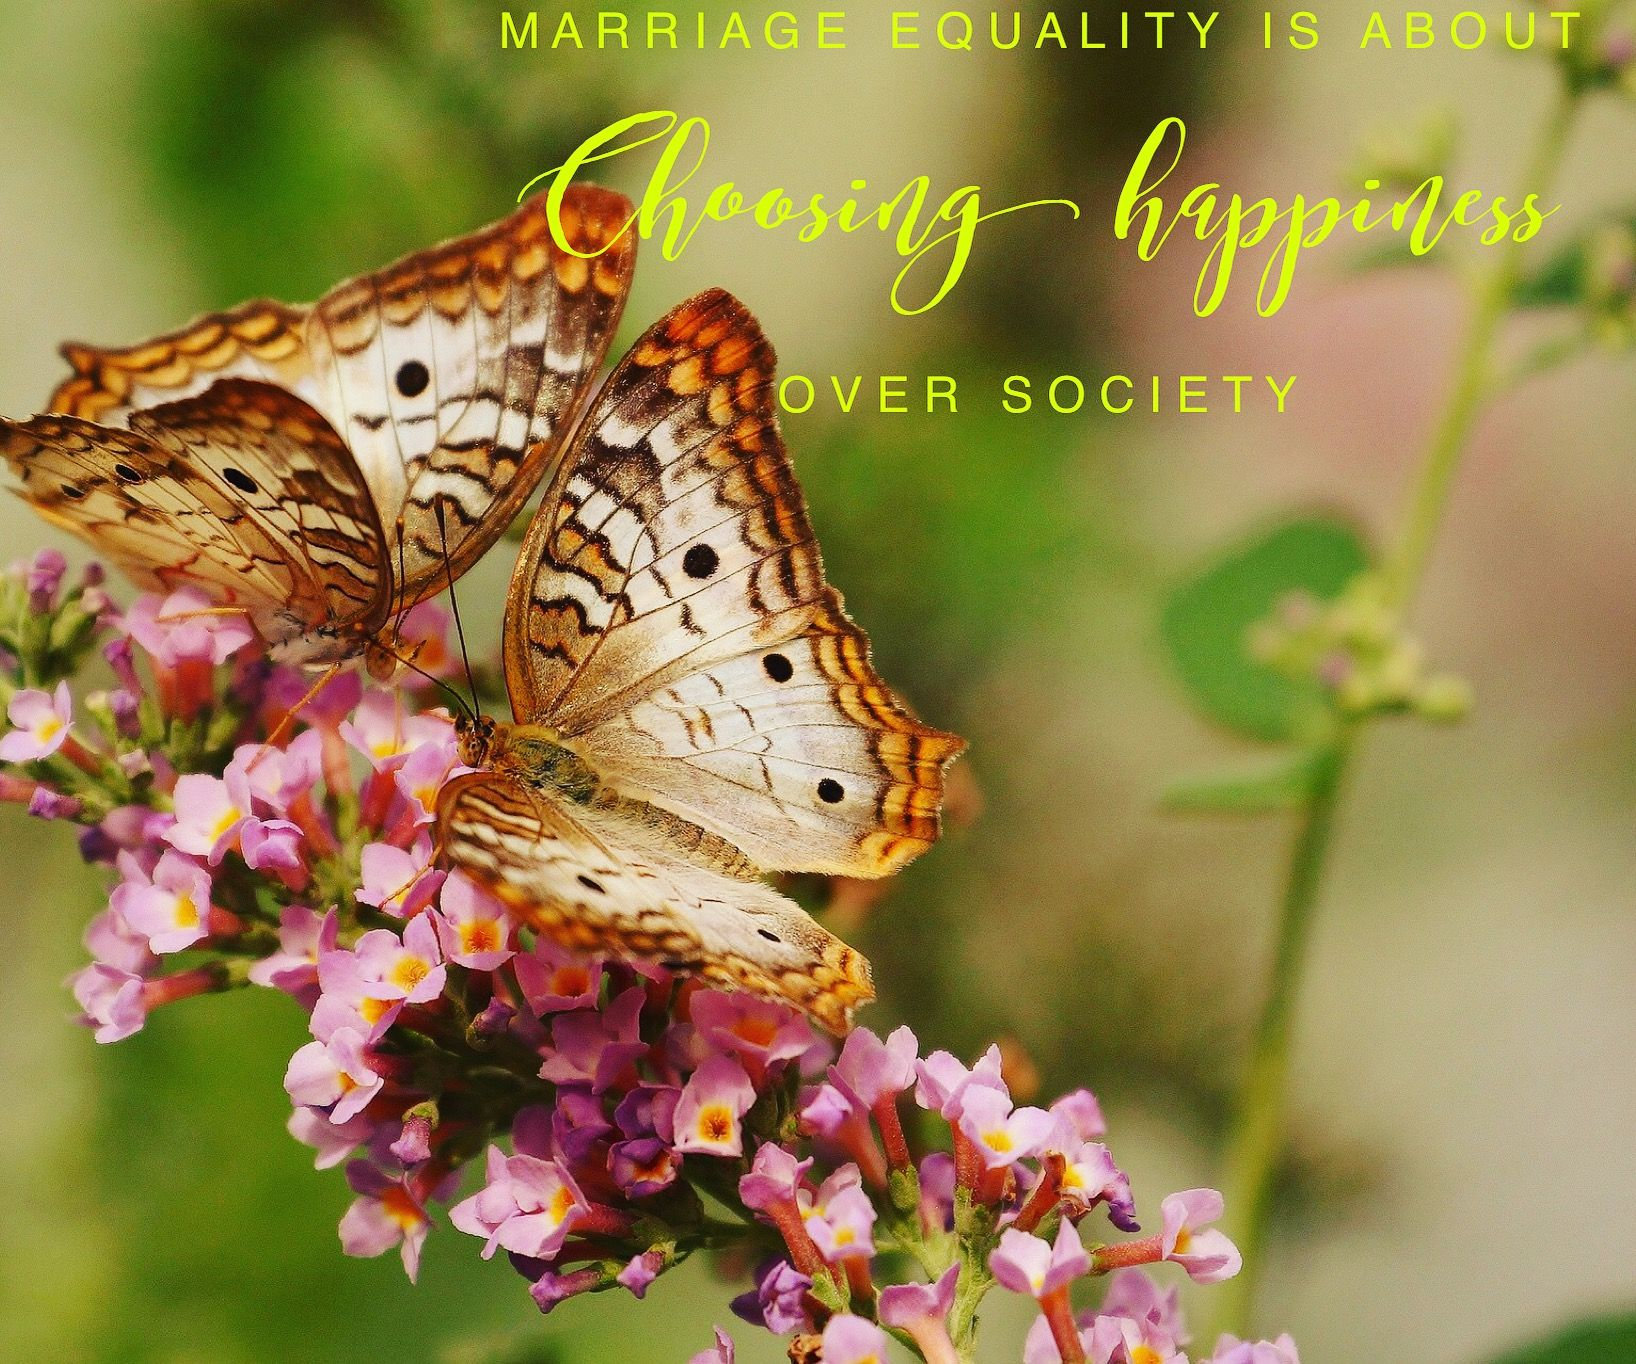 WebWed In the face of love, everyone is equal. Let